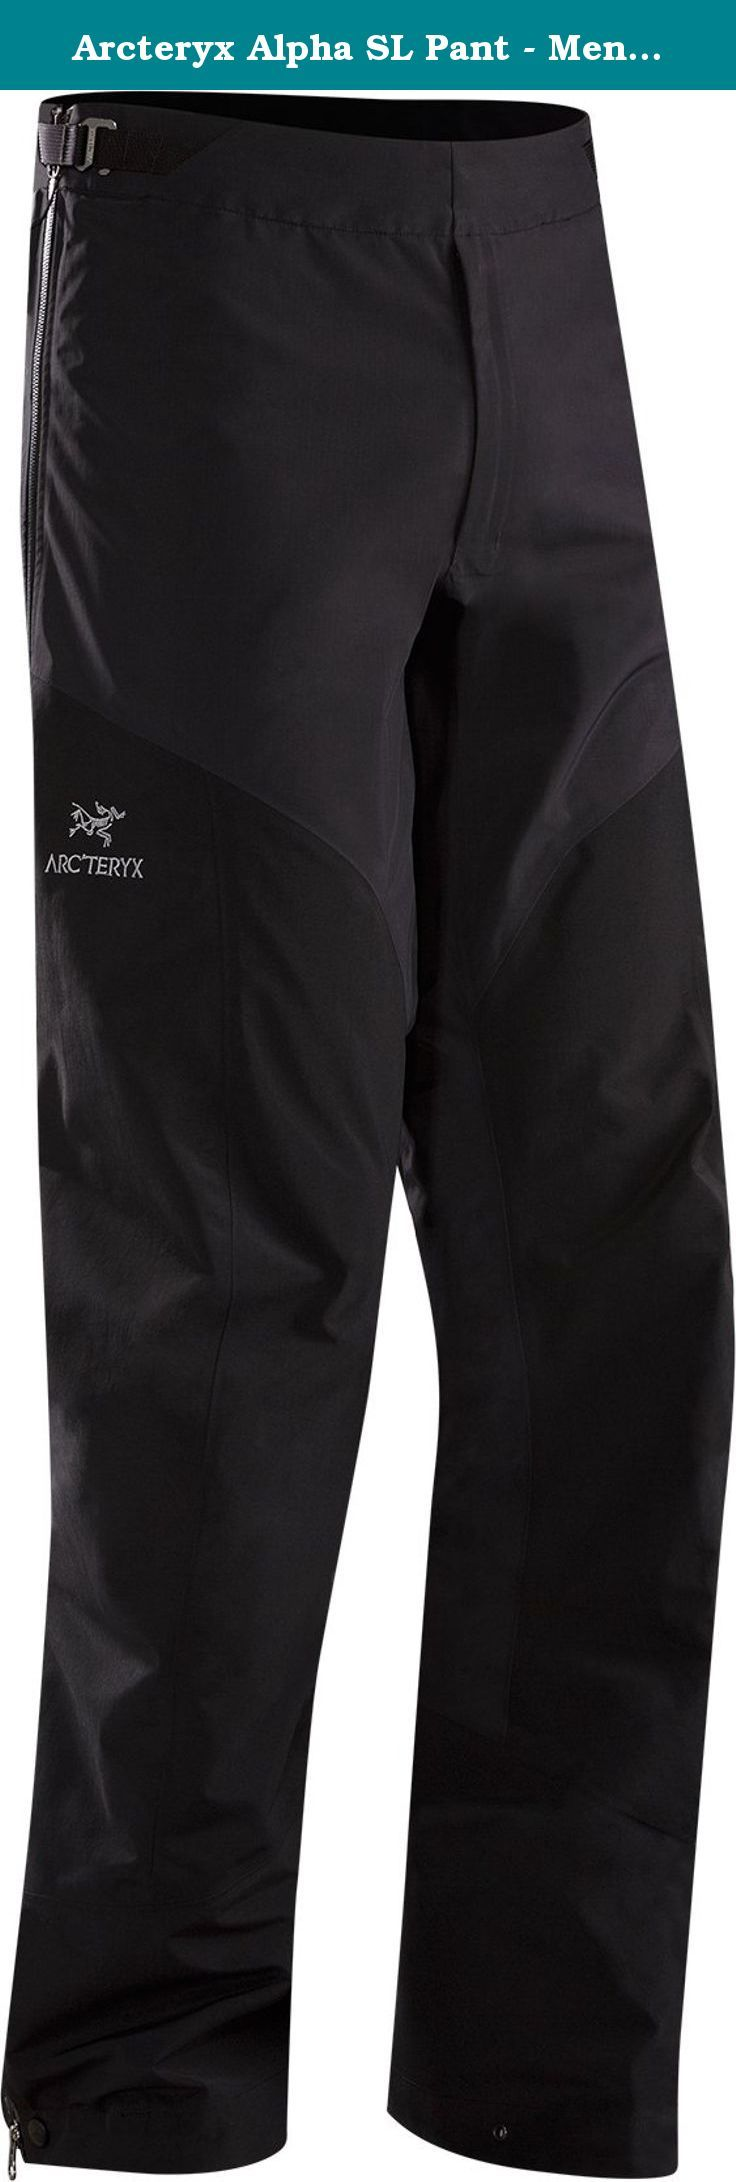 Arcteryx Alpha SL Pant - Men's Black Large Tall. FEATURES of the Arcteryx Men's Alpha SL Pant N40R face fabric laminated to Gore-Tex fabric with Paclite product technology delivers ultralight, packable weather protection N150P-X face fabric laminated to Gore-Tex fabric with Paclite technology reinforcements in high wear areas Full length side zips for easy entry and rapid ventilation Dual low profile waist adjusters fit under harness or pack waist belt Trim leg fit reduces crampon snags...